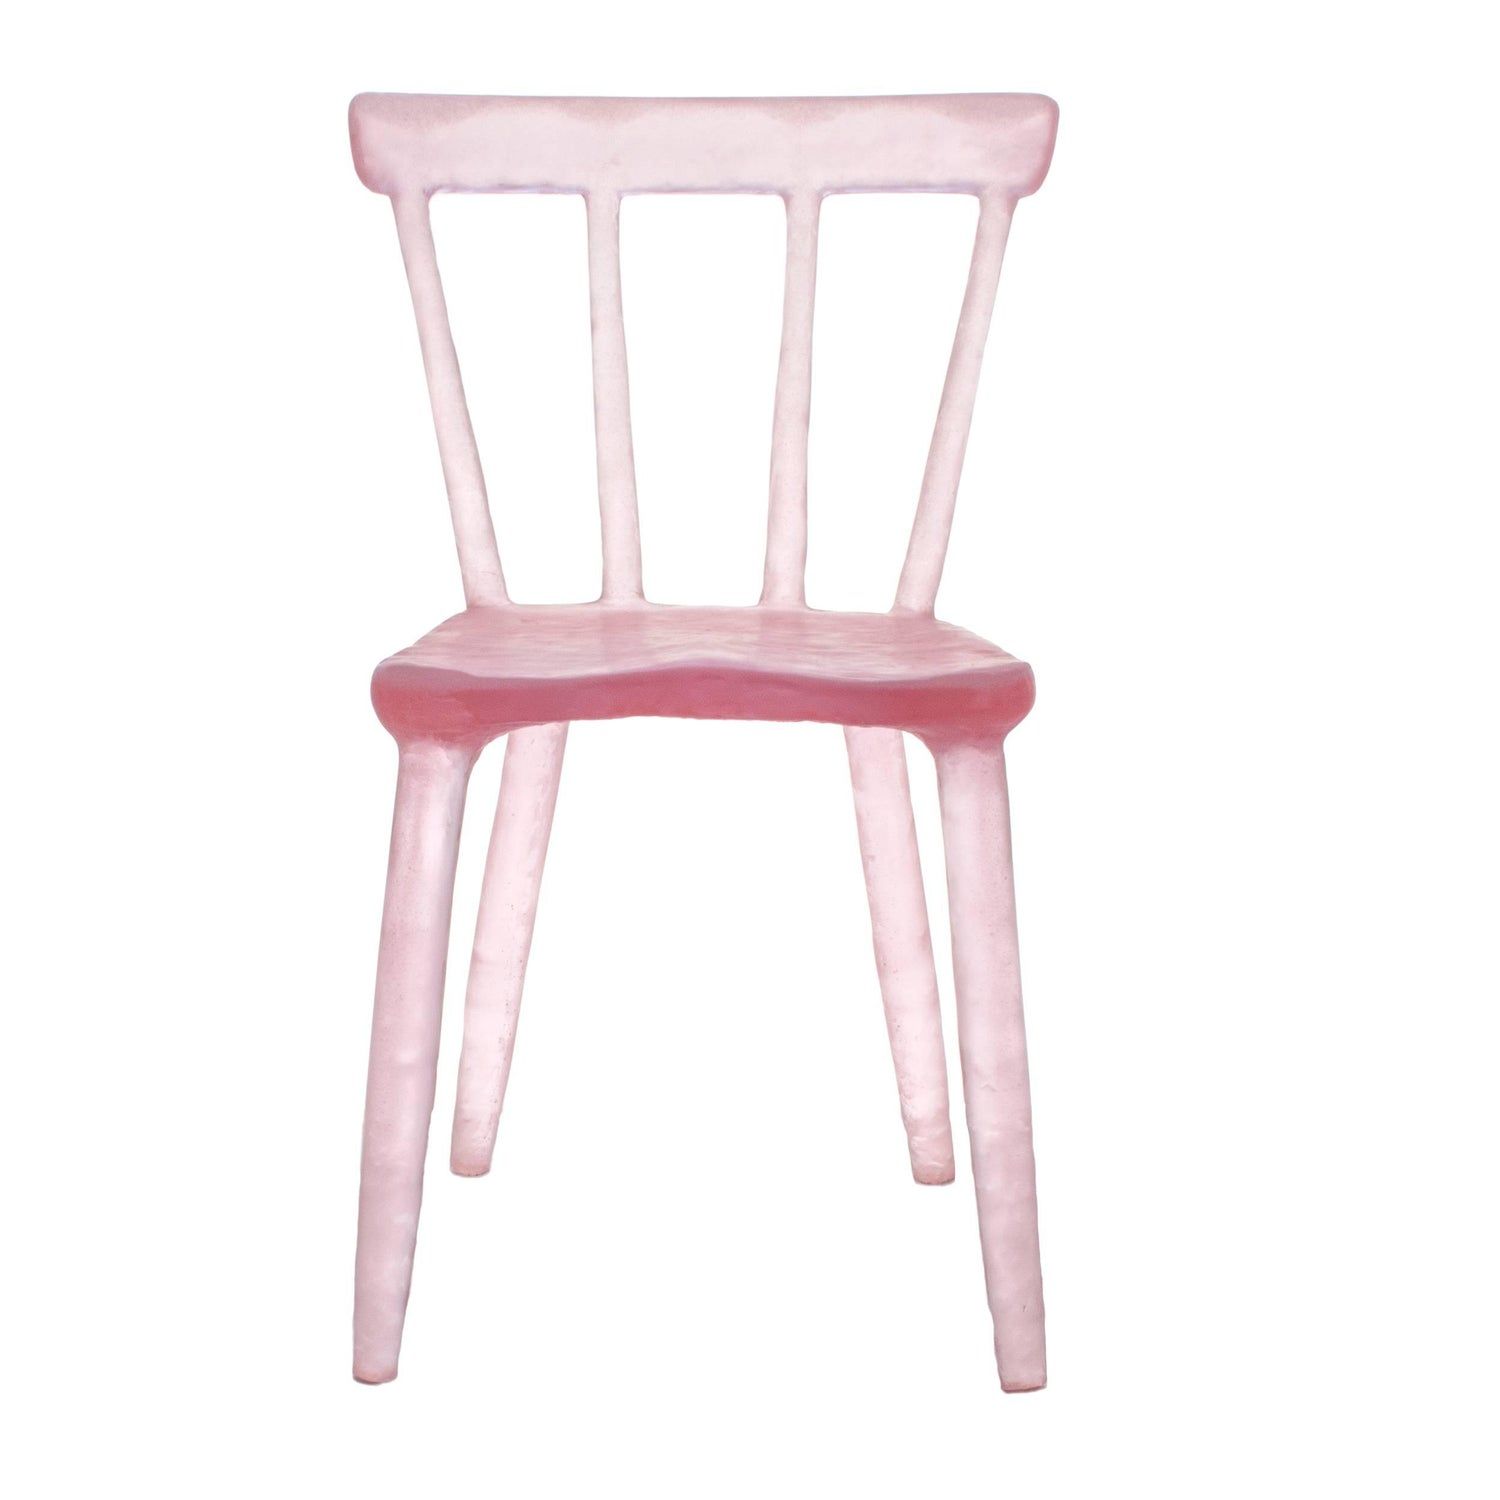 Glow Chair by Kim Markel in Pink Handmade from Cast Recycled